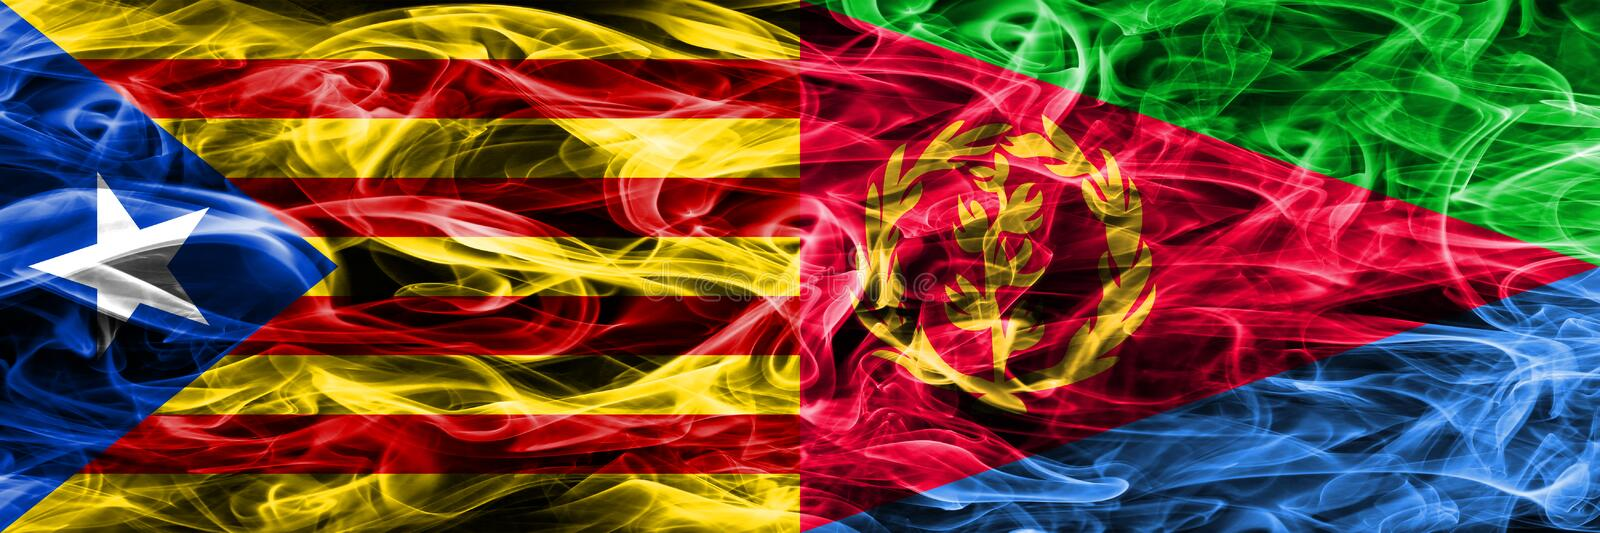 Catalonia vs Eritrea copy smoke flags placed side by side. Thick colored silky smoke flags of Catalan and Eritrea copy.  royalty free illustration